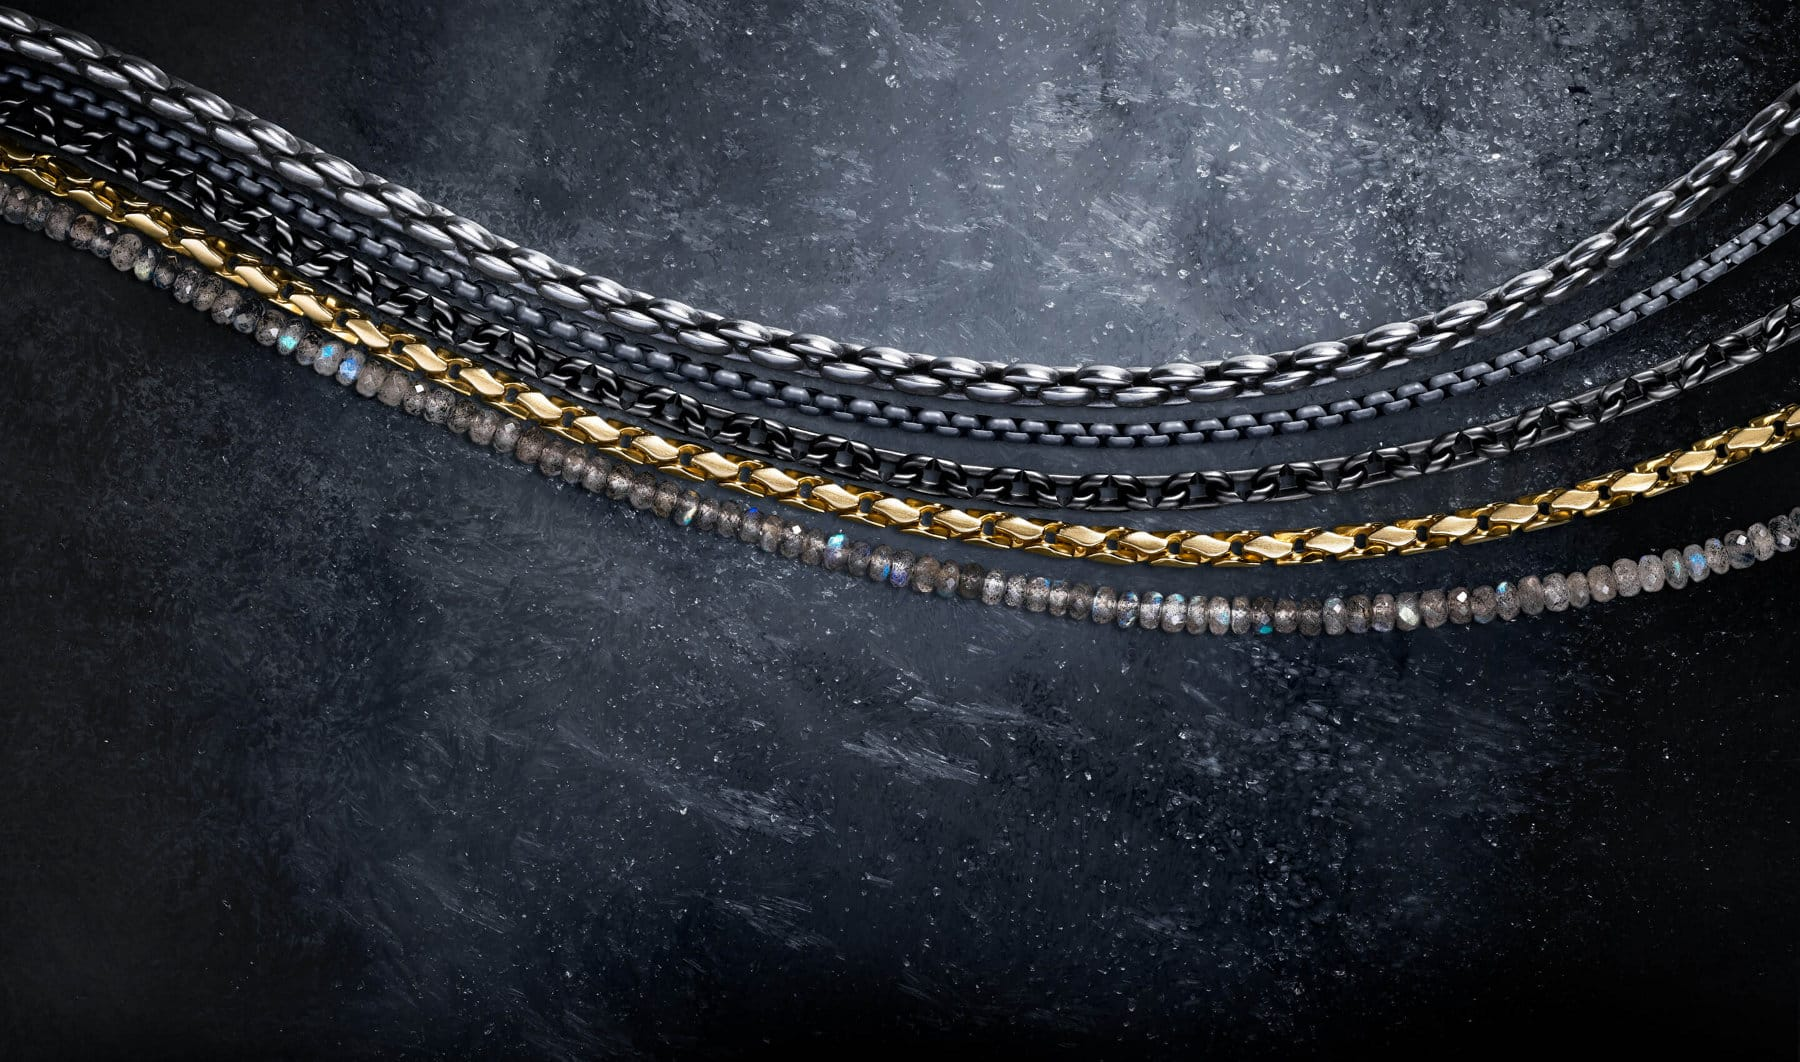 A color photo shows four David Yurman men's necklaces from the Chain and Spiritual Beads collections arranged in rows next to each other atop a snow-dusted dark, icy surface. The Chain necklaces are crafted from sterling silver, grey stainless steel or black titanium with sterling silver, and from 18K yellow gold. The Spiritual Beads necklace is crafted from labradorite with sterling silver.